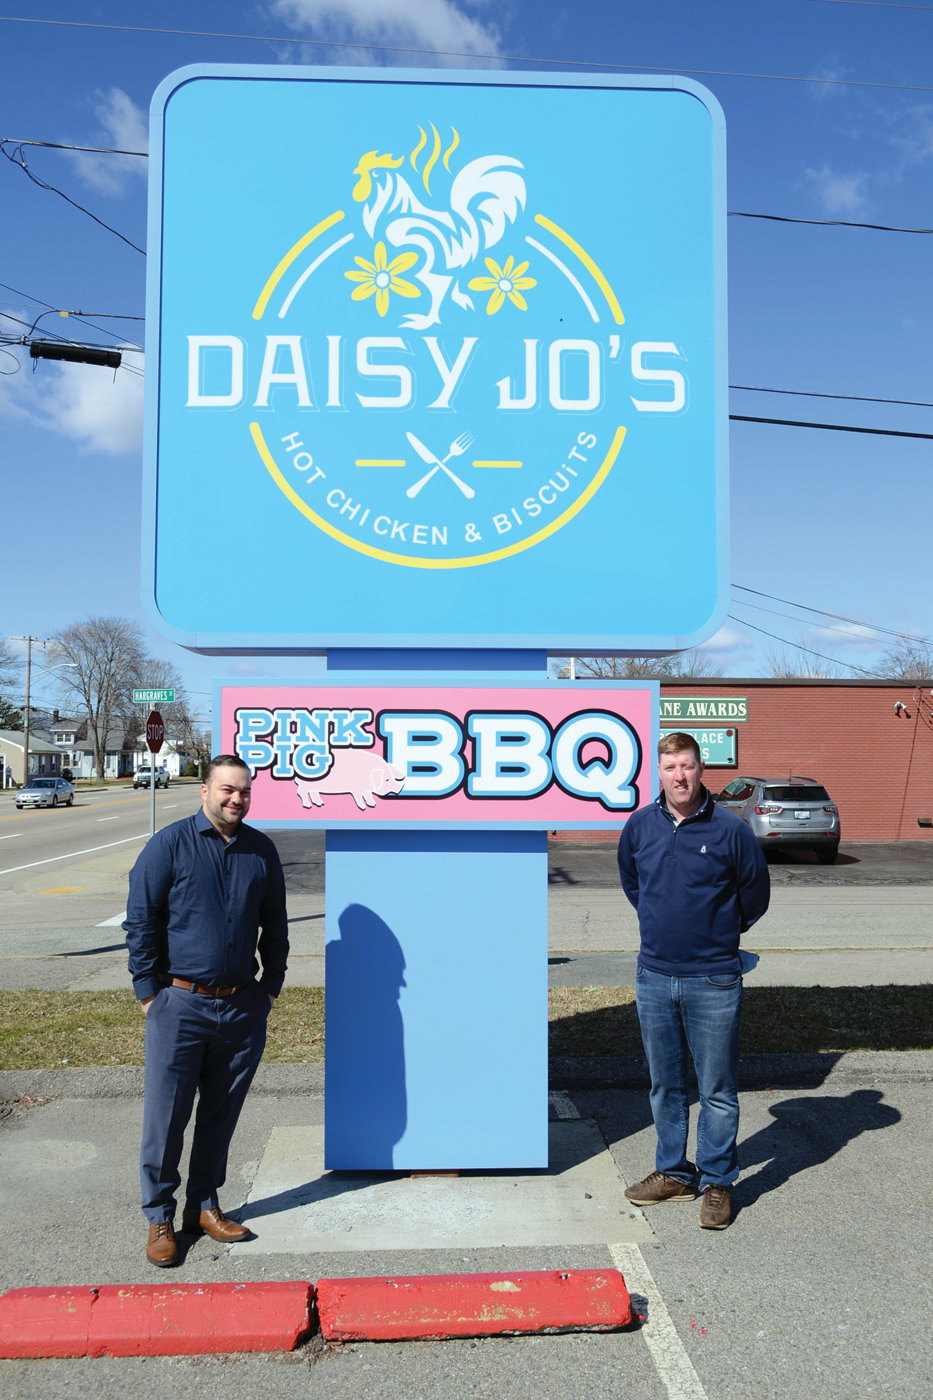 SIGN OF THINGS TO COME: The Pink Pig BBQ sign will soon be gone, but the Daisy Jo's sign will hopefully bring in lots of hungry, curious diners to the new Daisy Jo's, opening this month within a couple weeks, according to co-owners Ed Brady and Jeff Quinlan.